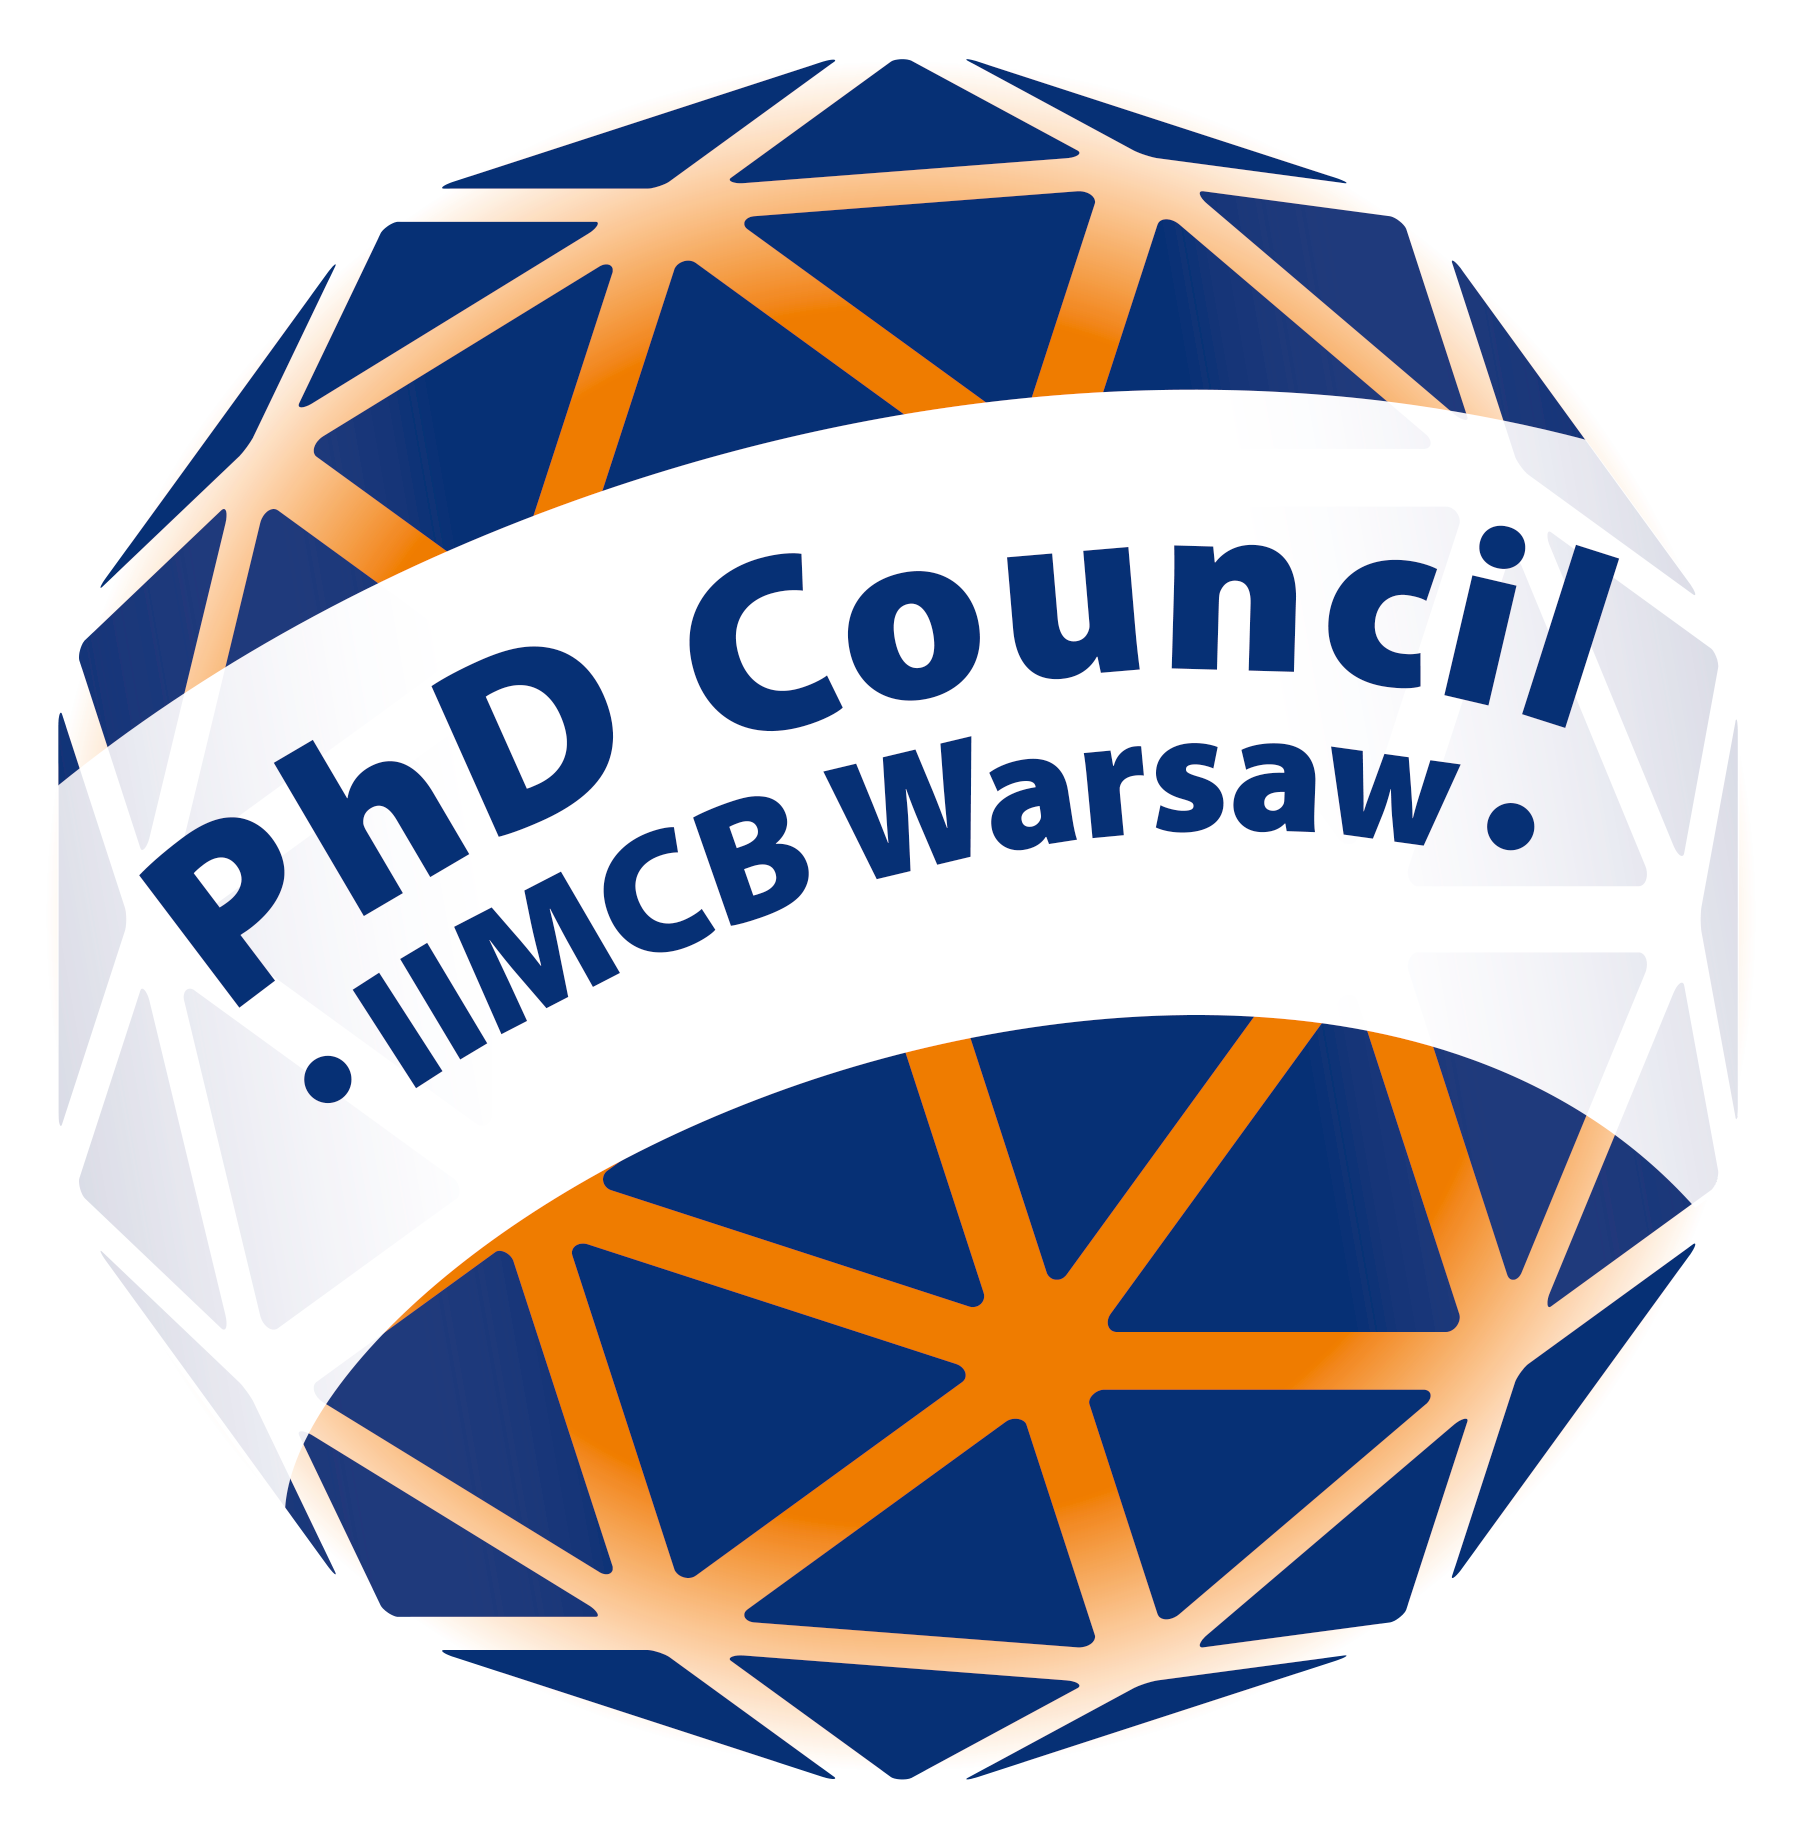 5.PhD Council logo